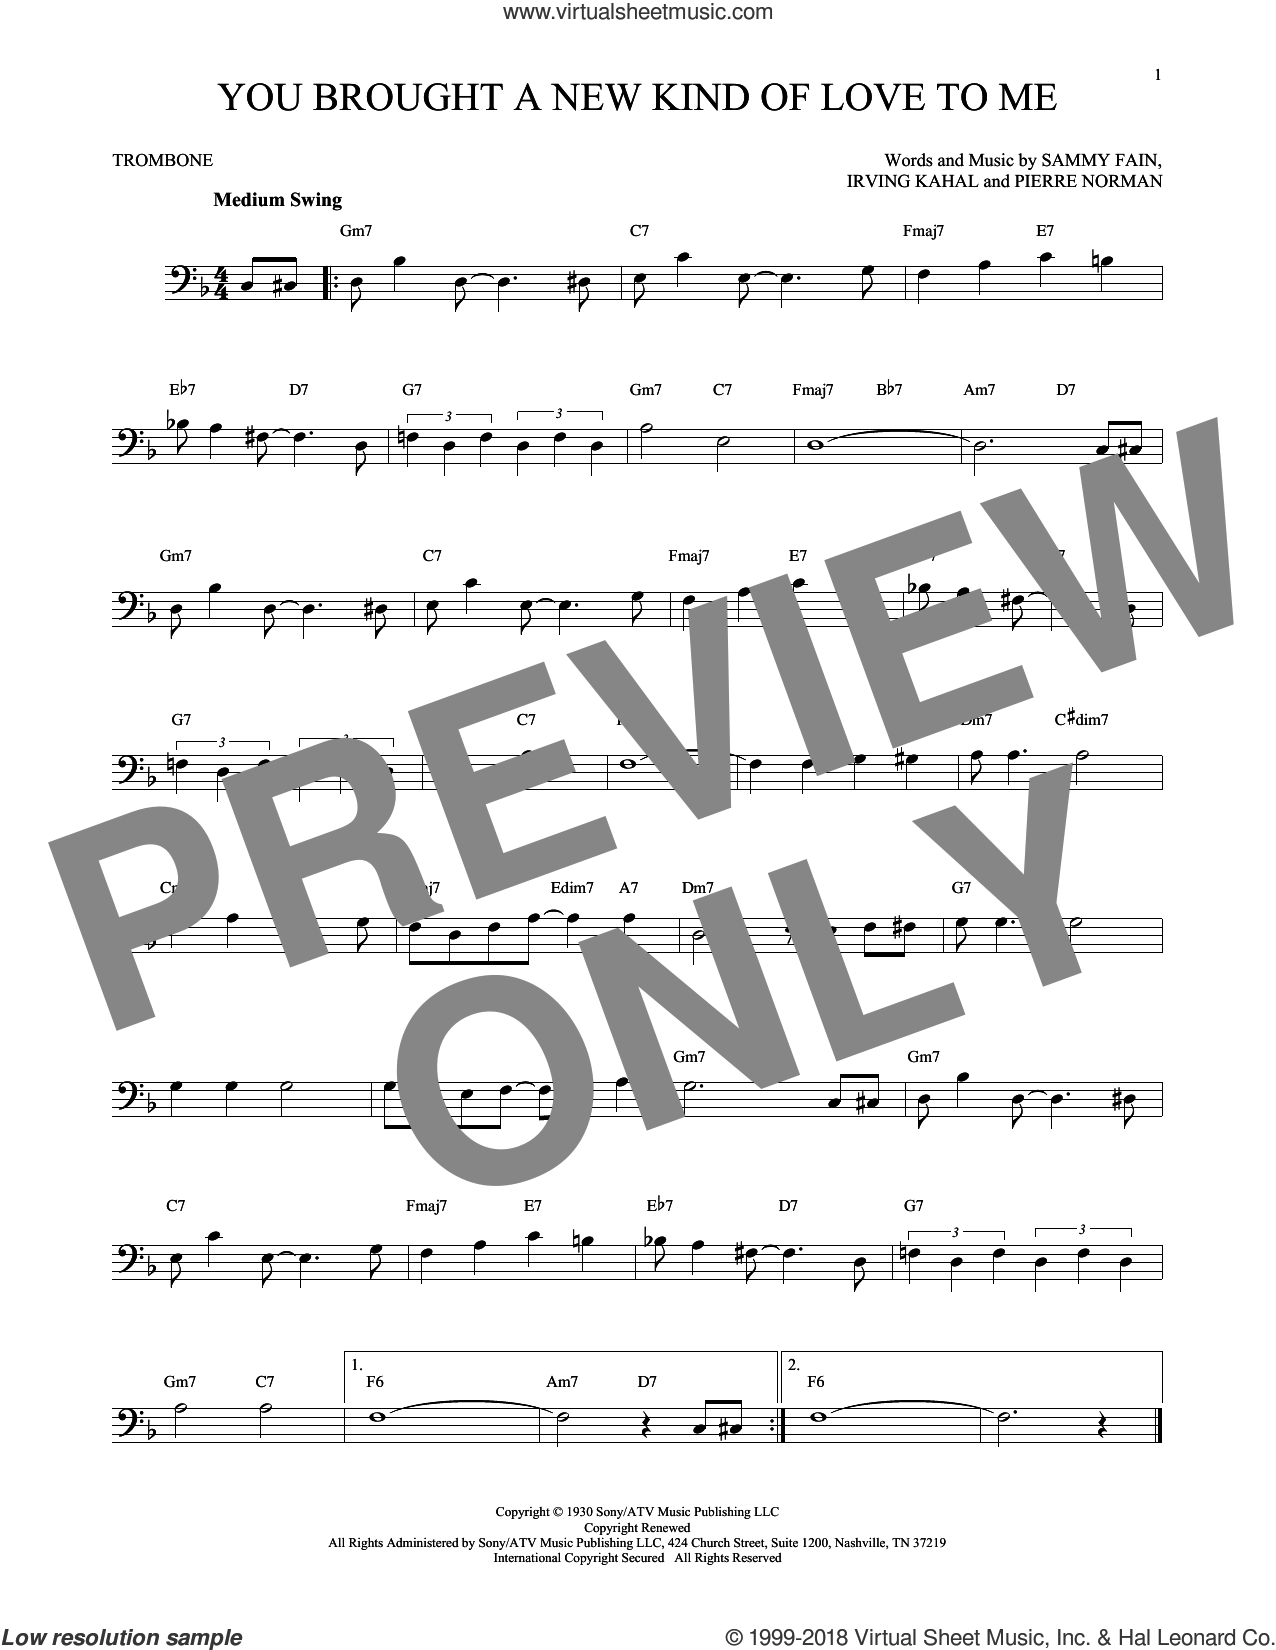 You Brought A New Kind Of Love To Me sheet music for trombone solo by Sammy Fain, Scott Hamilton, Irving Kahal and Pierre Norman, intermediate skill level